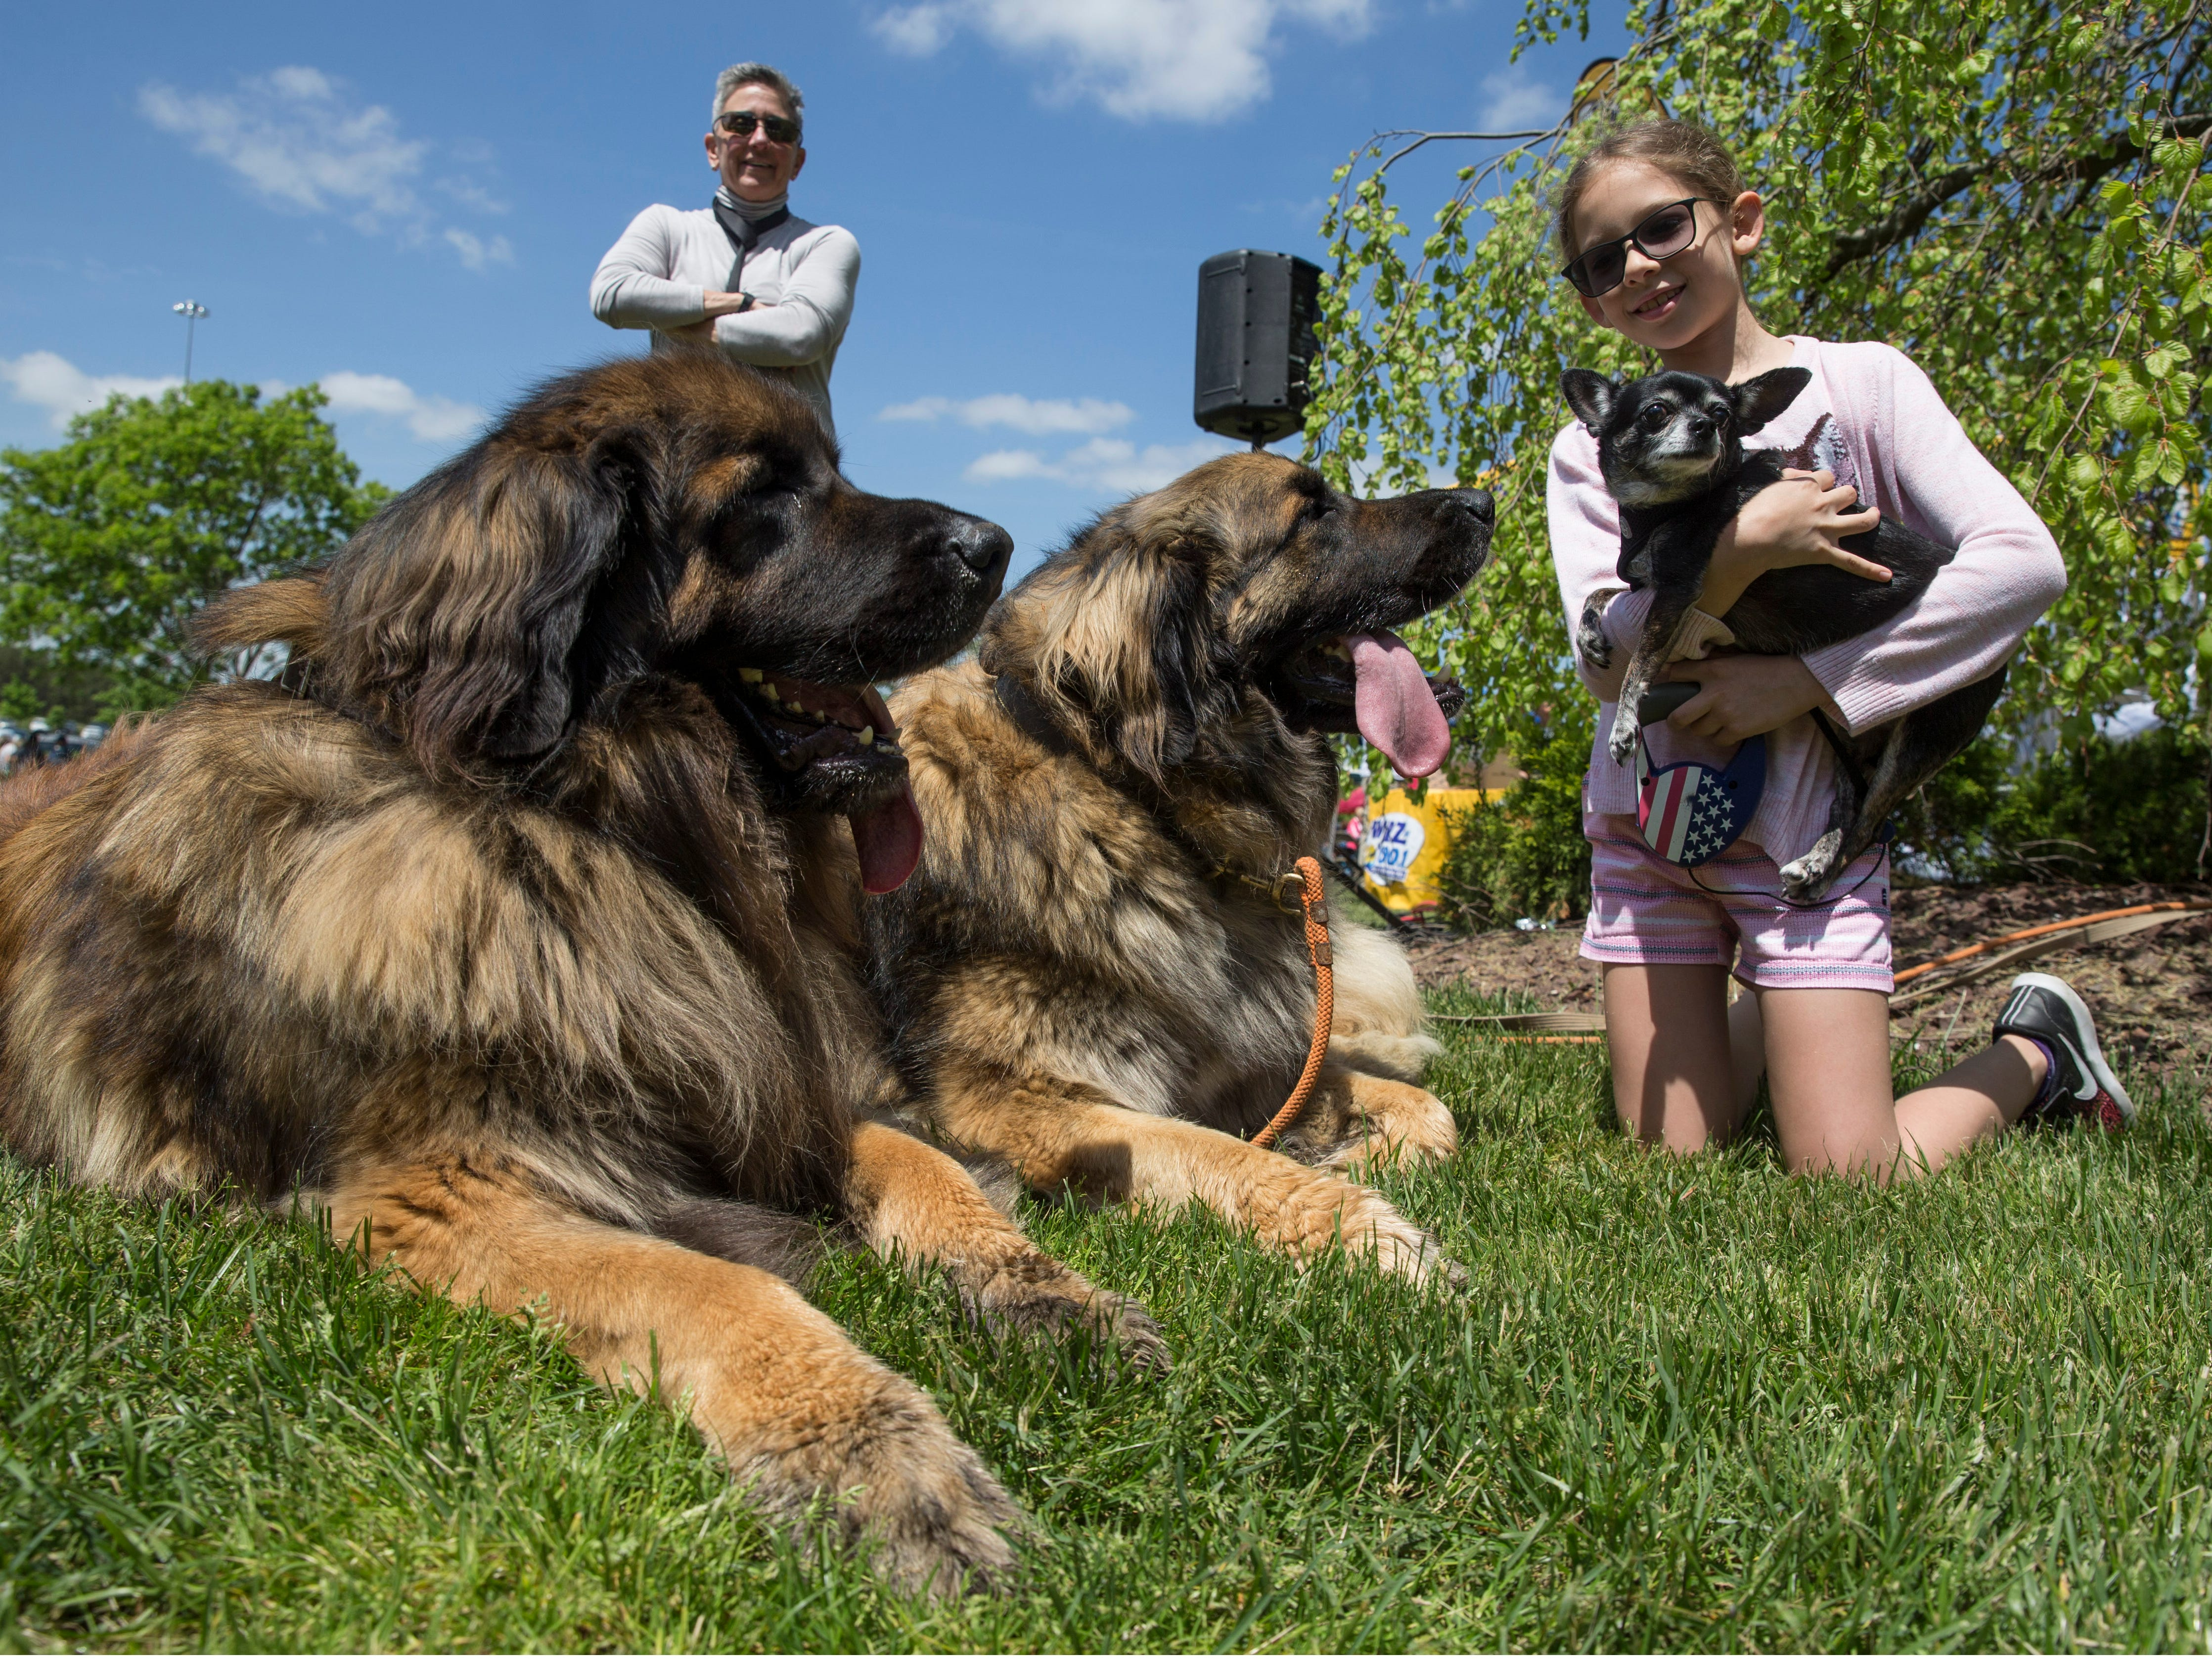 """Lily Silva, 8, of Roselle introduces """"Cookie"""" to two large Leonburger dogs owned by Erica Friedman of Cream Ridge. Lakewood BlueClaws Bark in the Park takes place on stadium grounds prior to the game. Dogs were also allowed to attend the game with a """"pooch pass"""". Many adoption agencies were on hand offering dogs looking for homes to qualified humans. Lakewood, NJSaturday, May 11, 2019"""